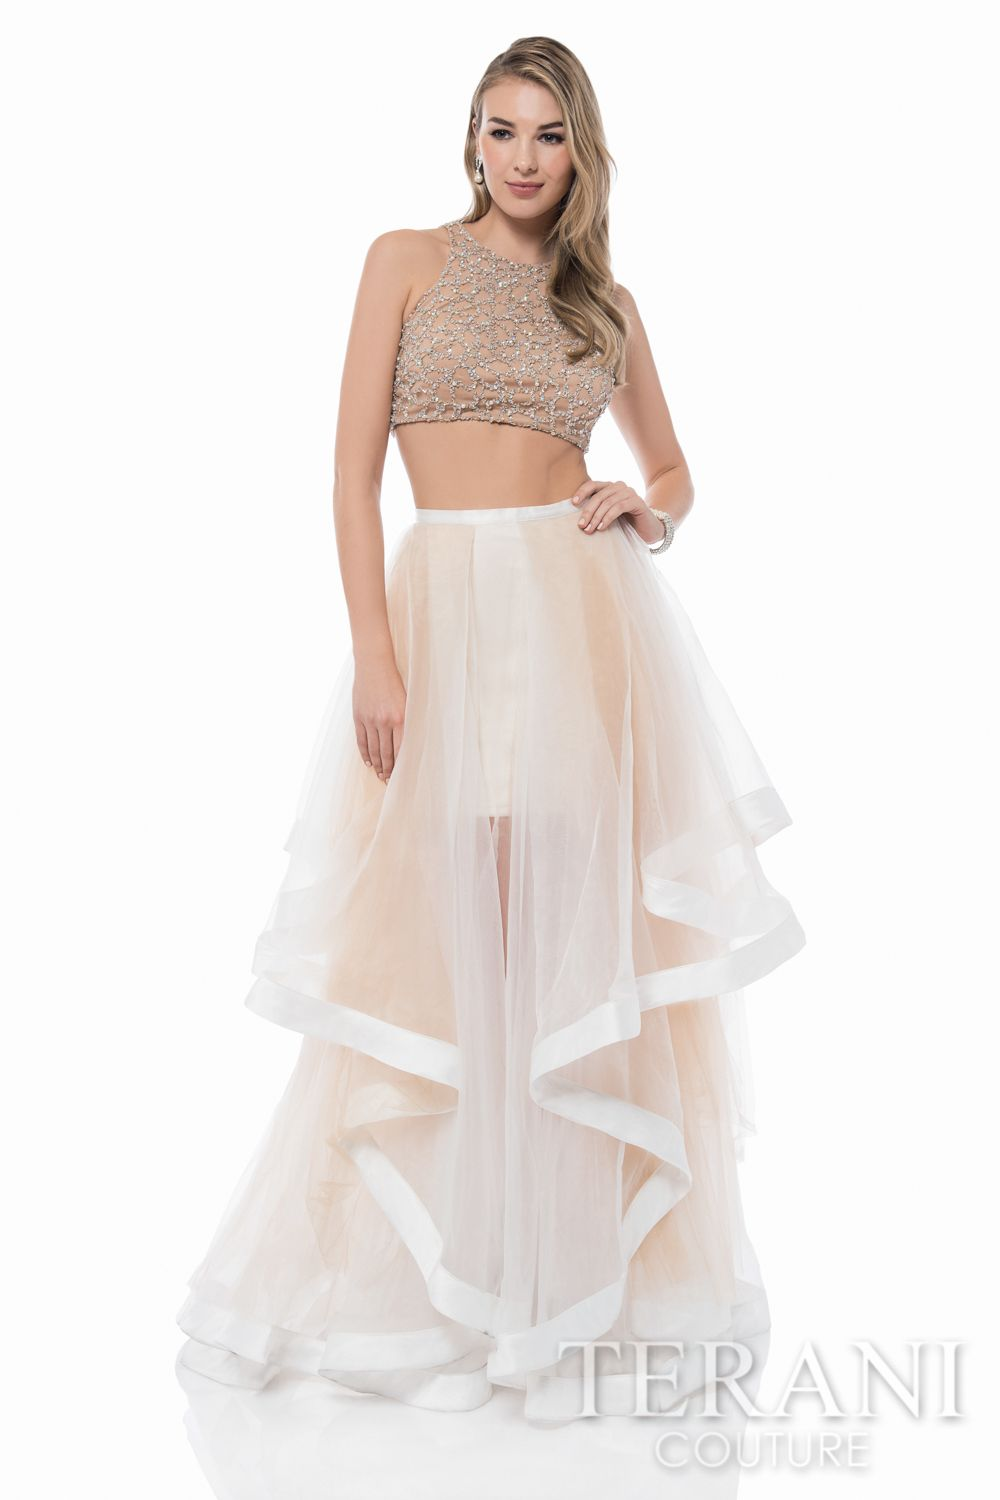 2a081aee8aa5b Beautiful+2-piece+ensemble +featuring+a+nude,+crystal+embellished+illusion+midriff+top+and+sheer,+gathered+mesh+skirt+with+ribbon+accented+high-low+hemline.